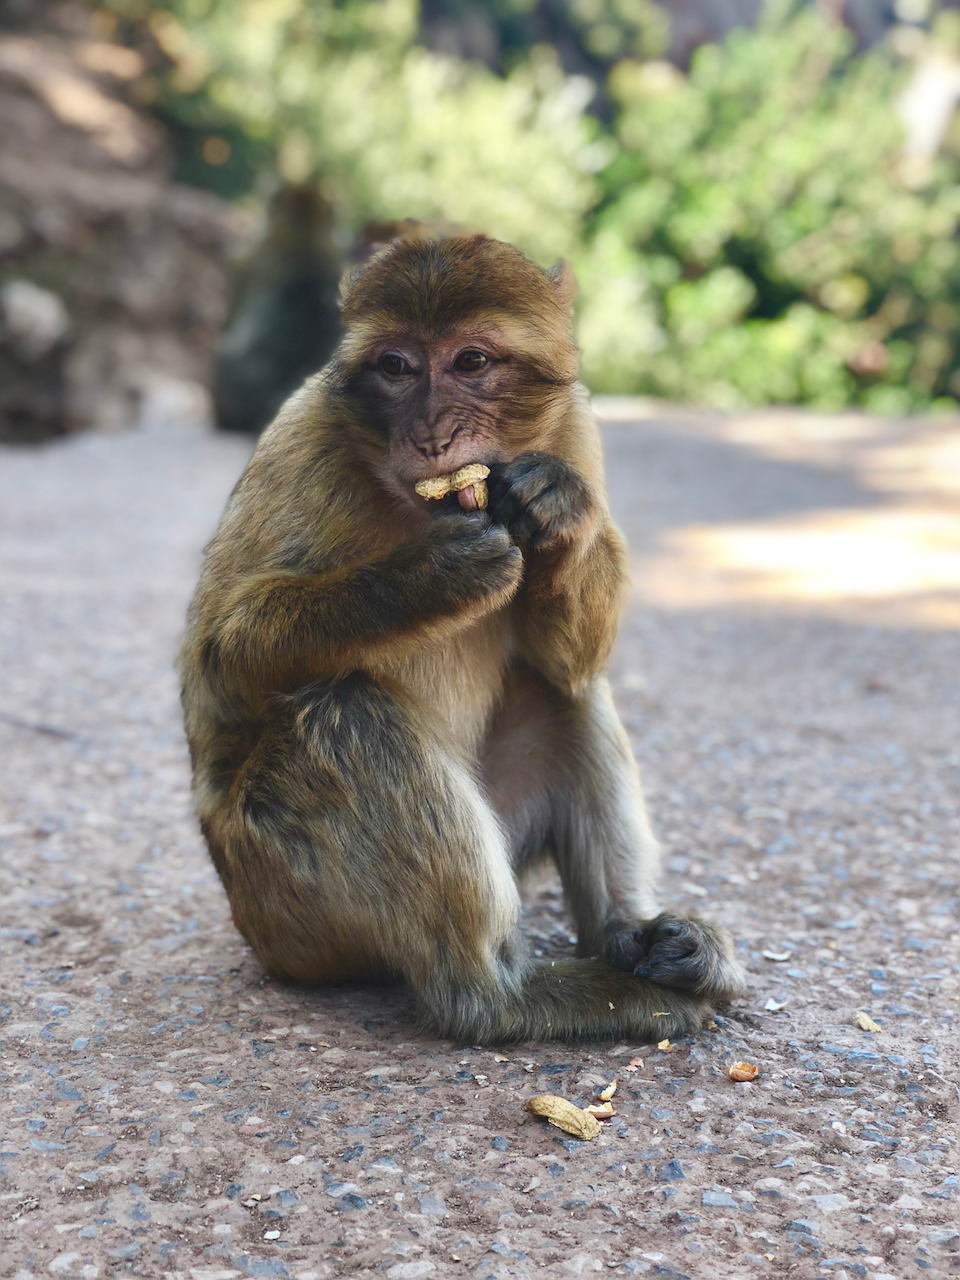 Monkey eating nuts in Ouzoud, day trip from Marrakech Morocco